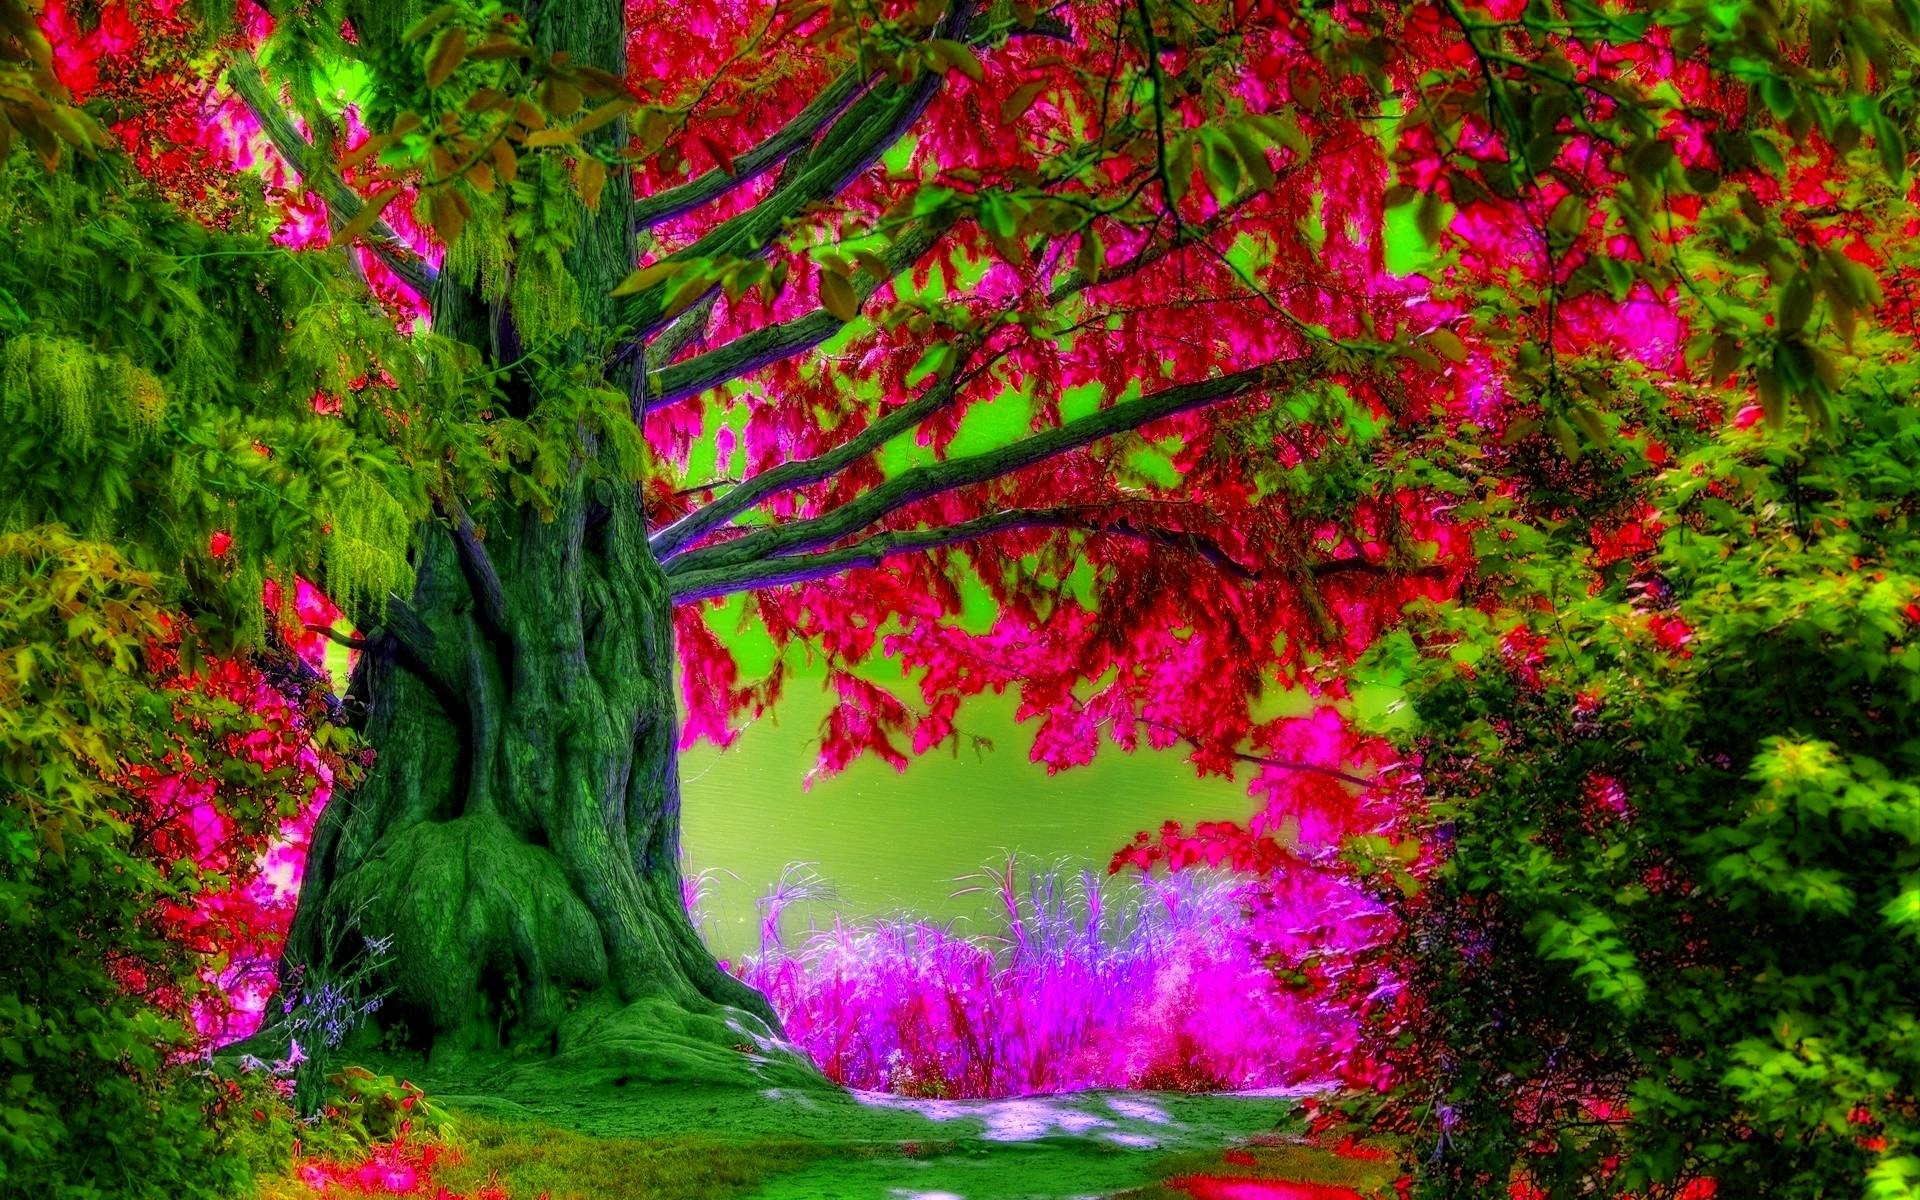 Spring Trees Wallpaper Desktop Hq Images 12 HD Wallpapers | Hdimges.